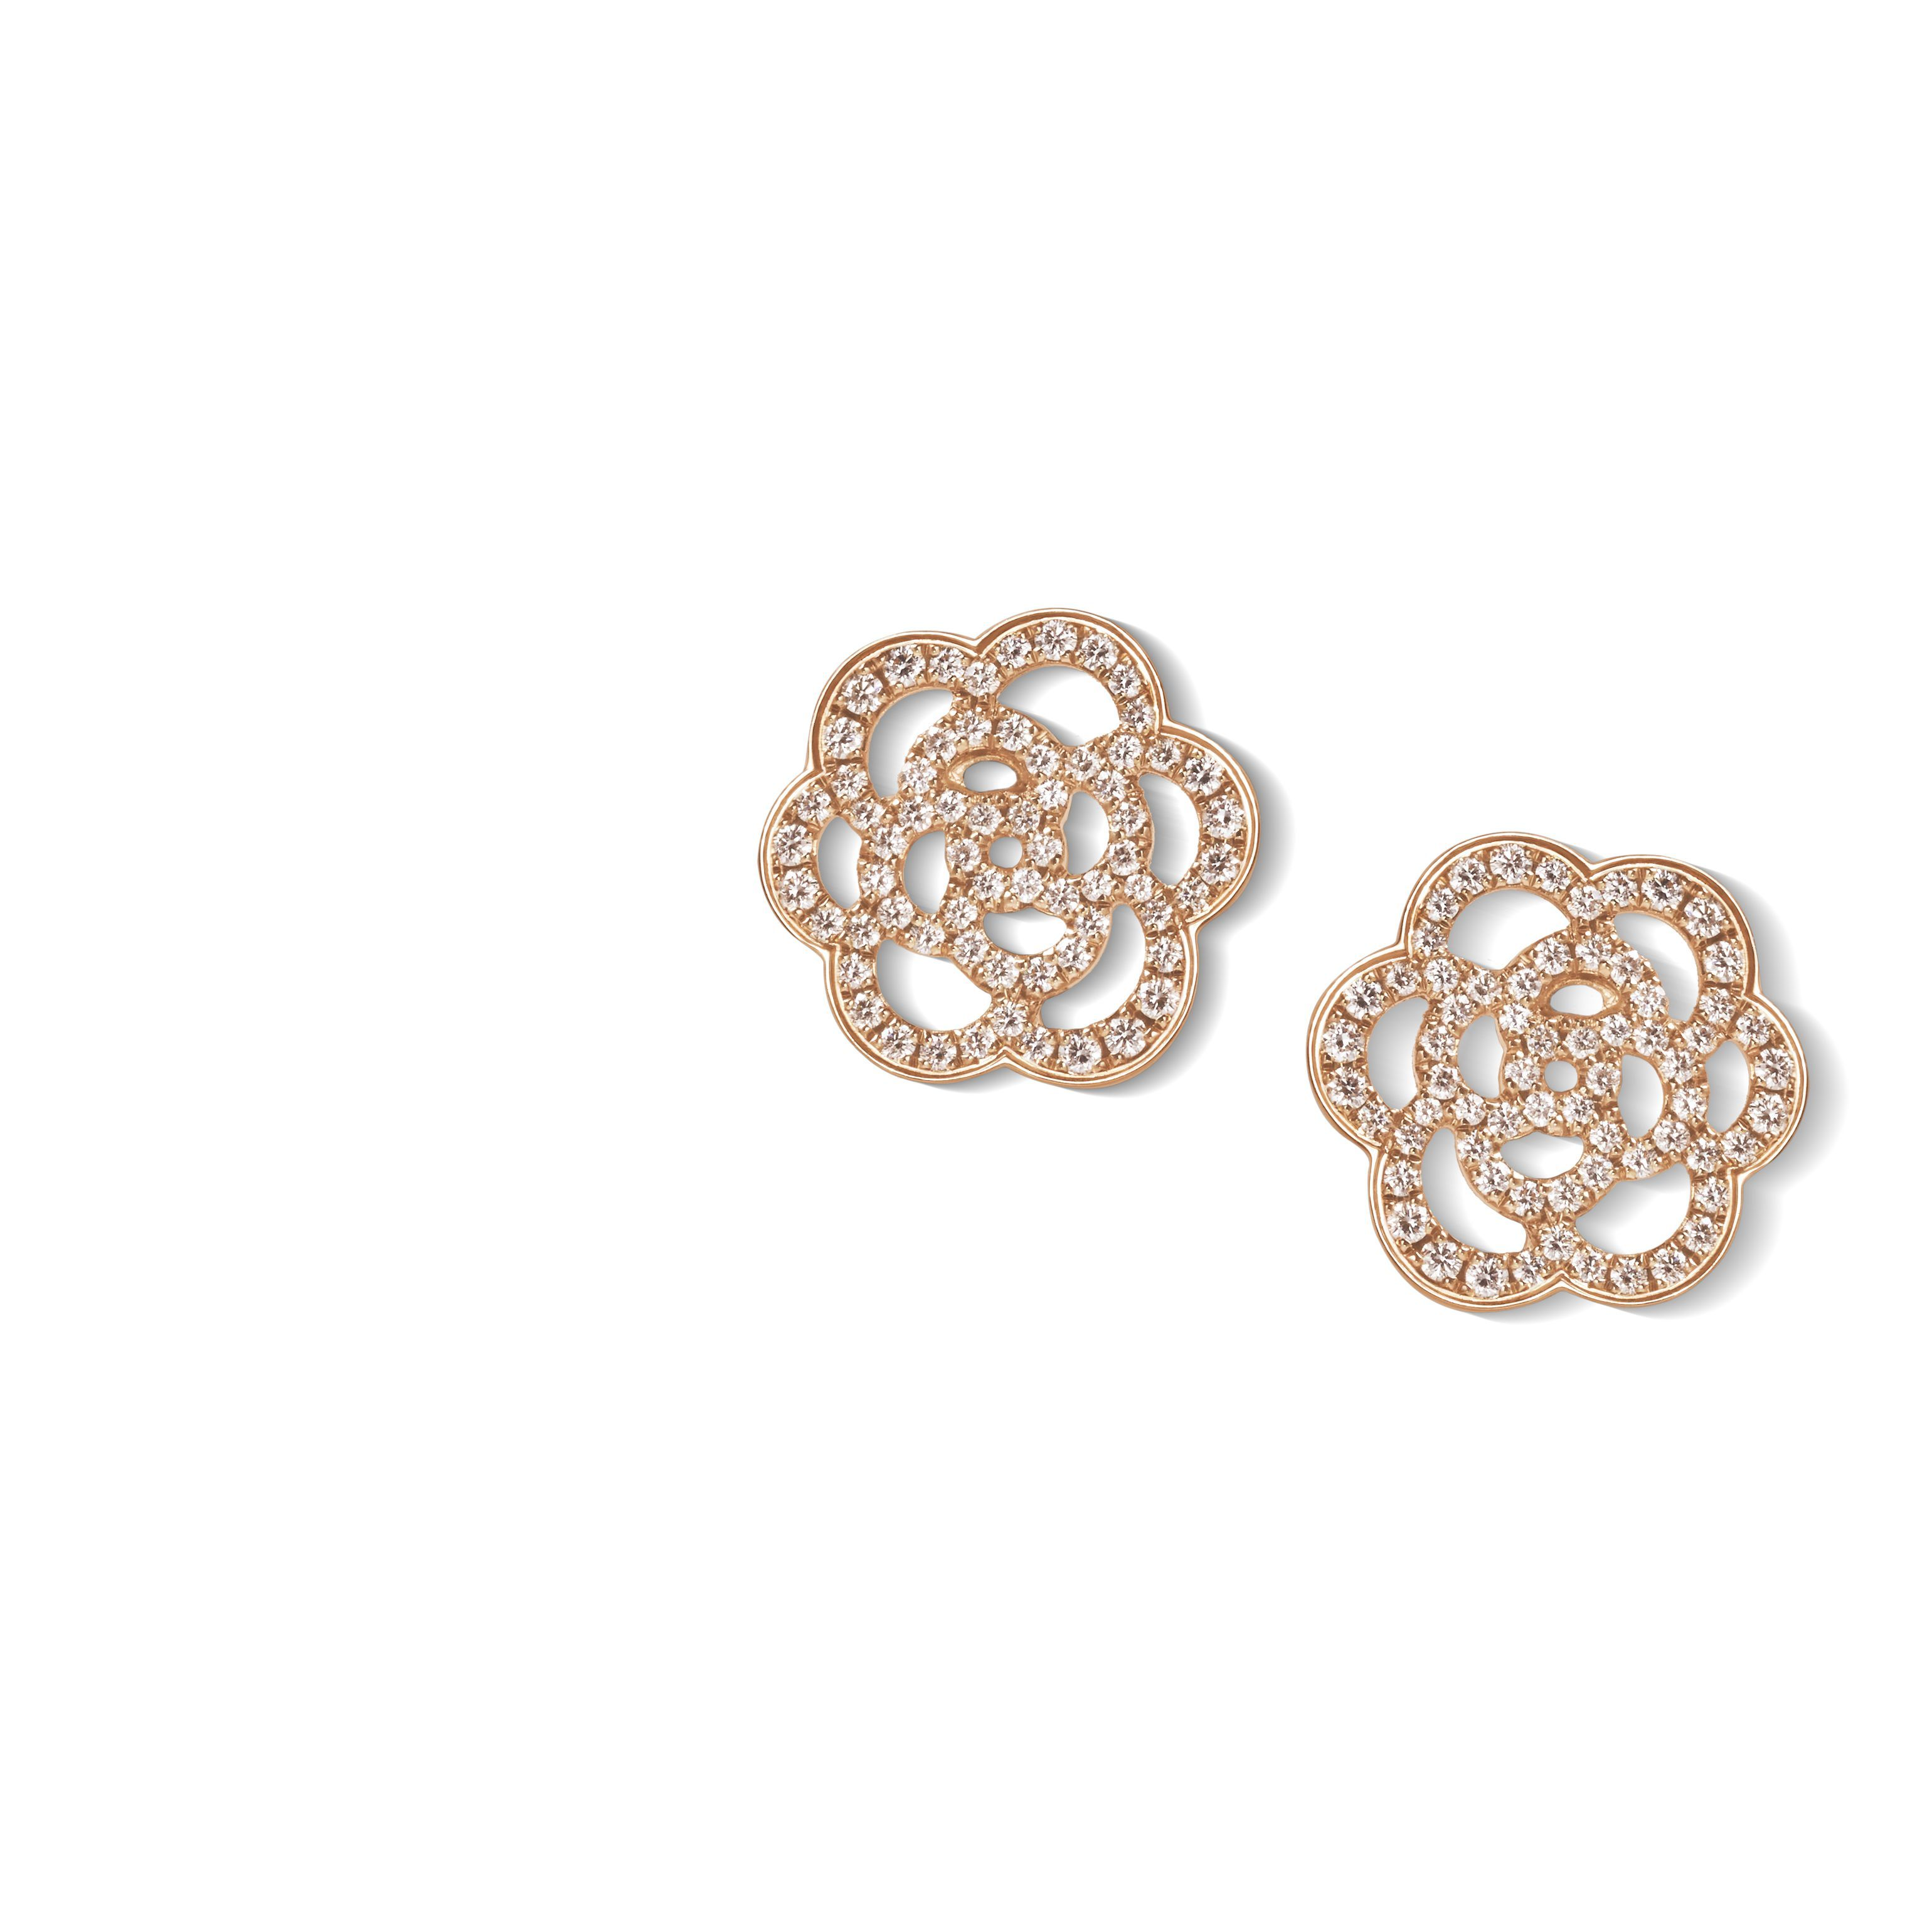 Camélia Earrings Ajouré In Pink Gold And Diamonds At The Chanel Fine Jewellery Website